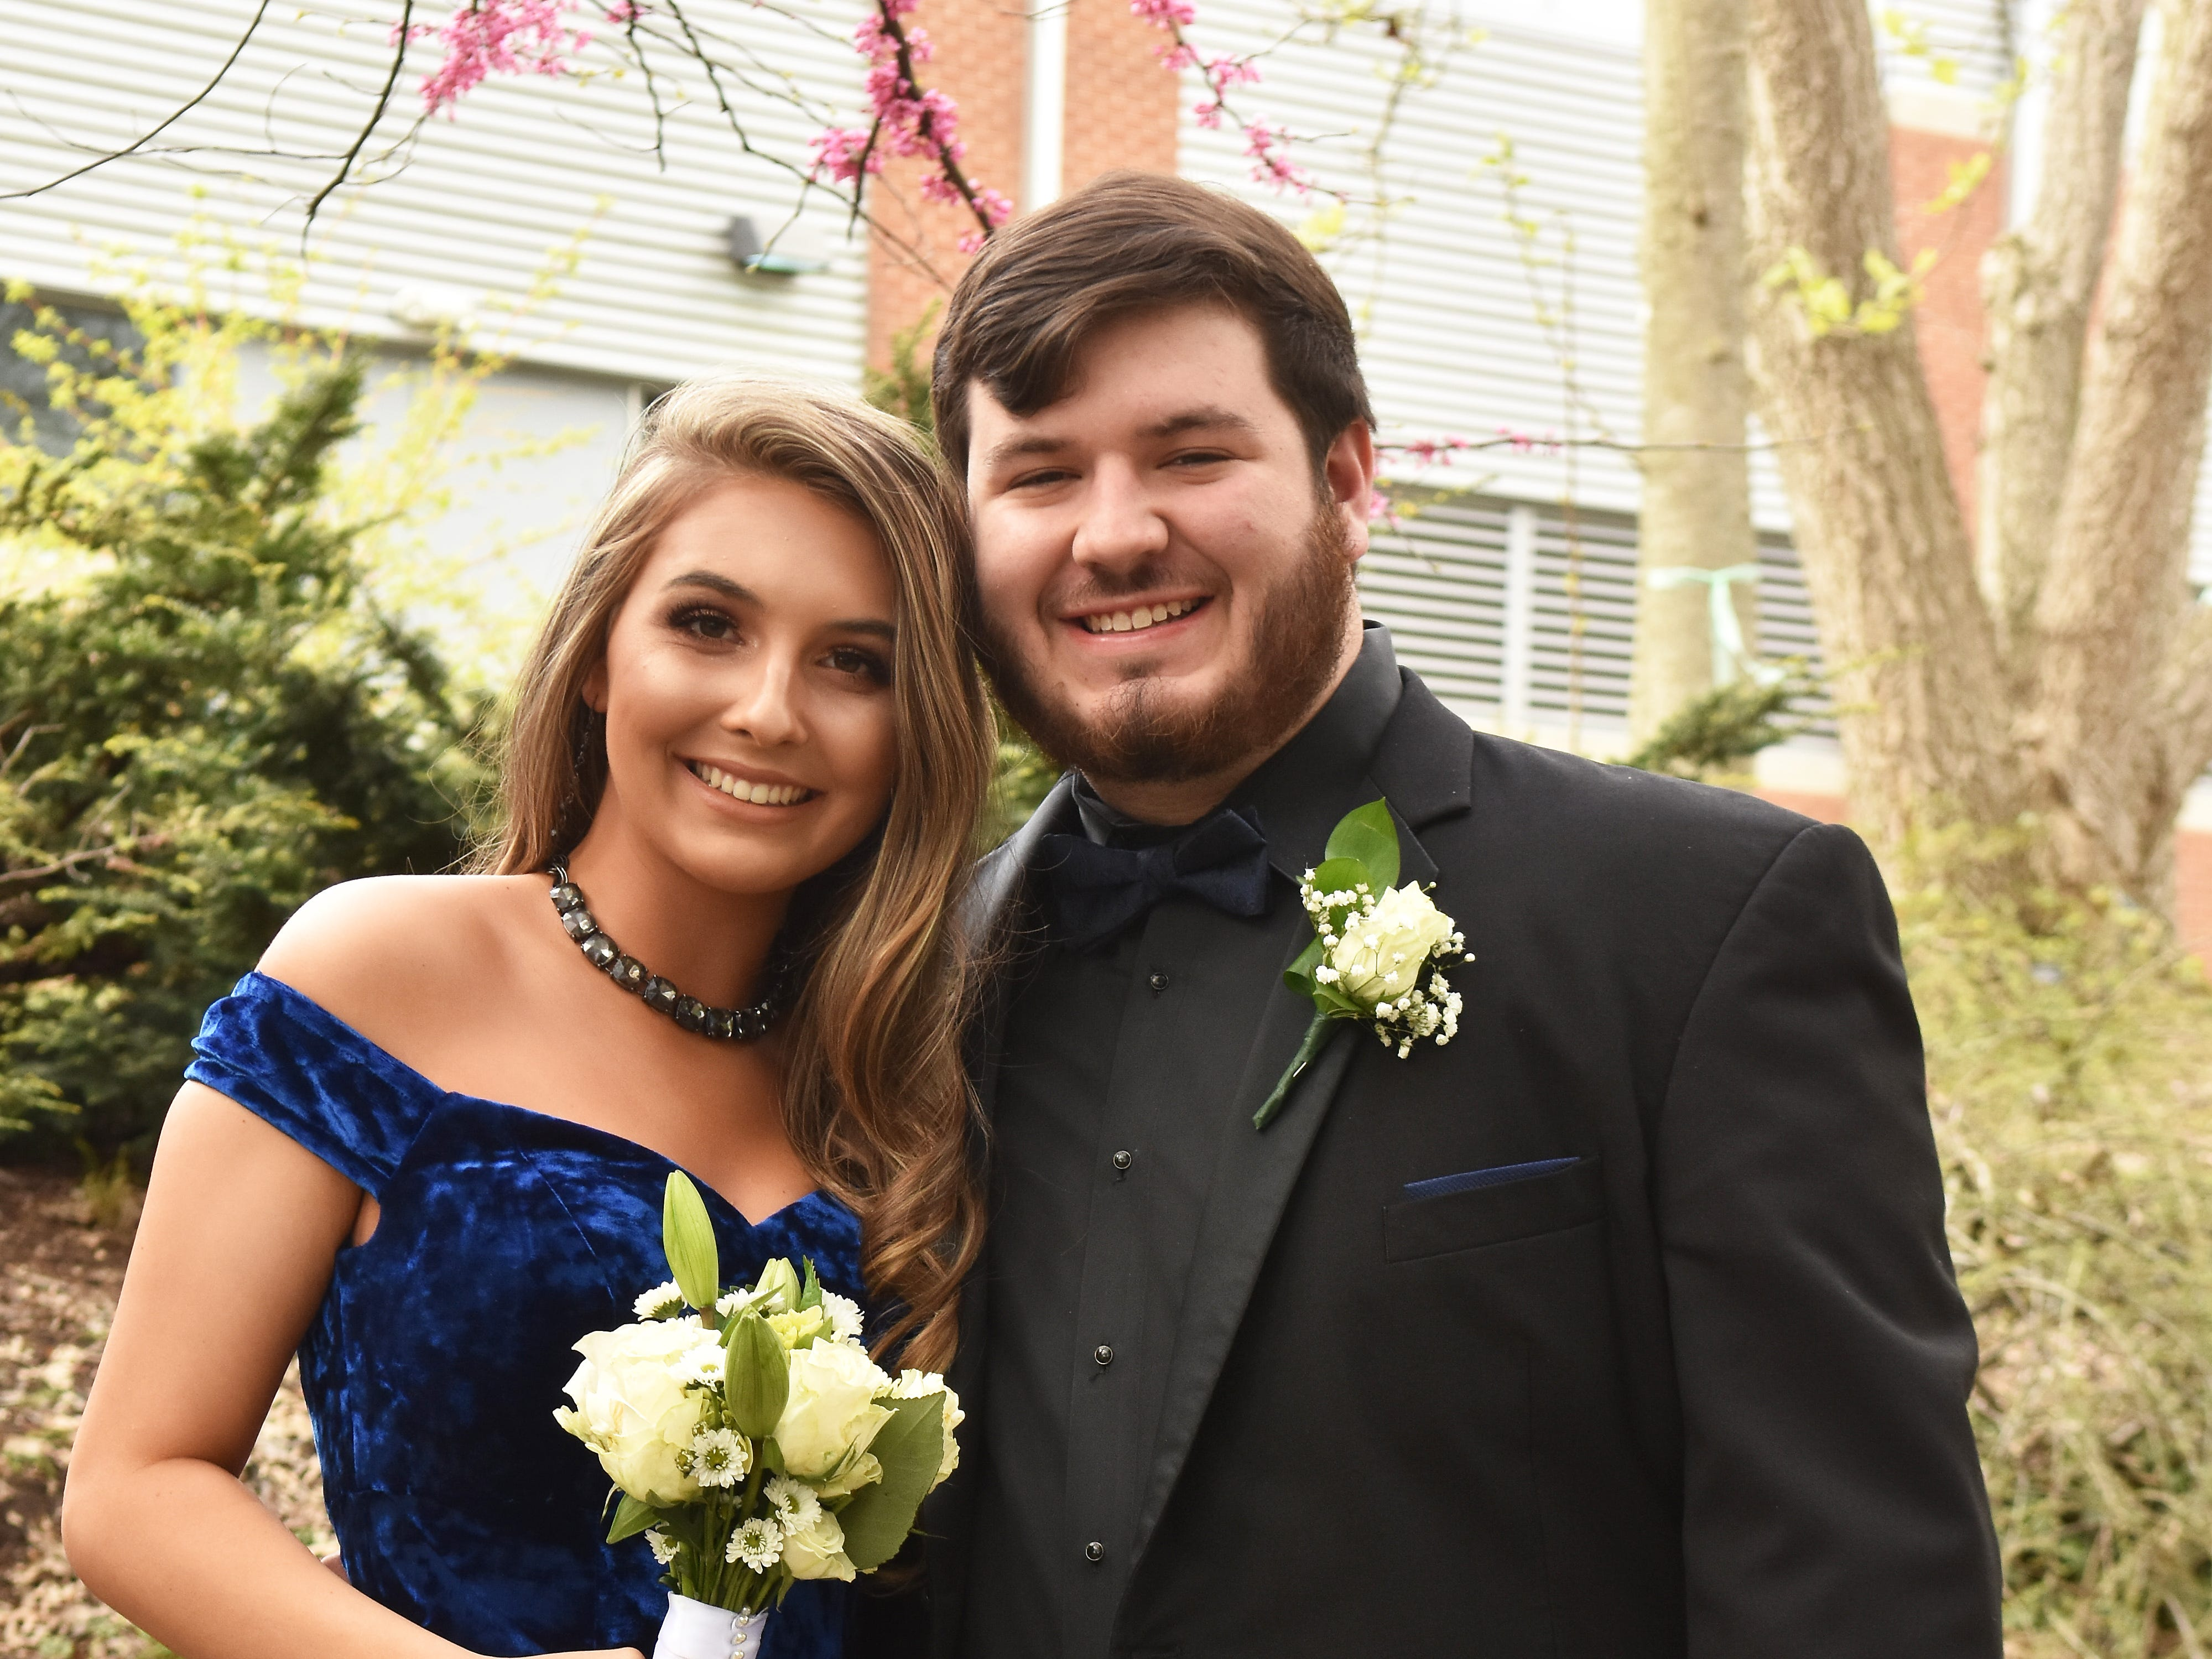 Scenes from the 2019 Halls High prom, Friday, April 5 at the Foundry.